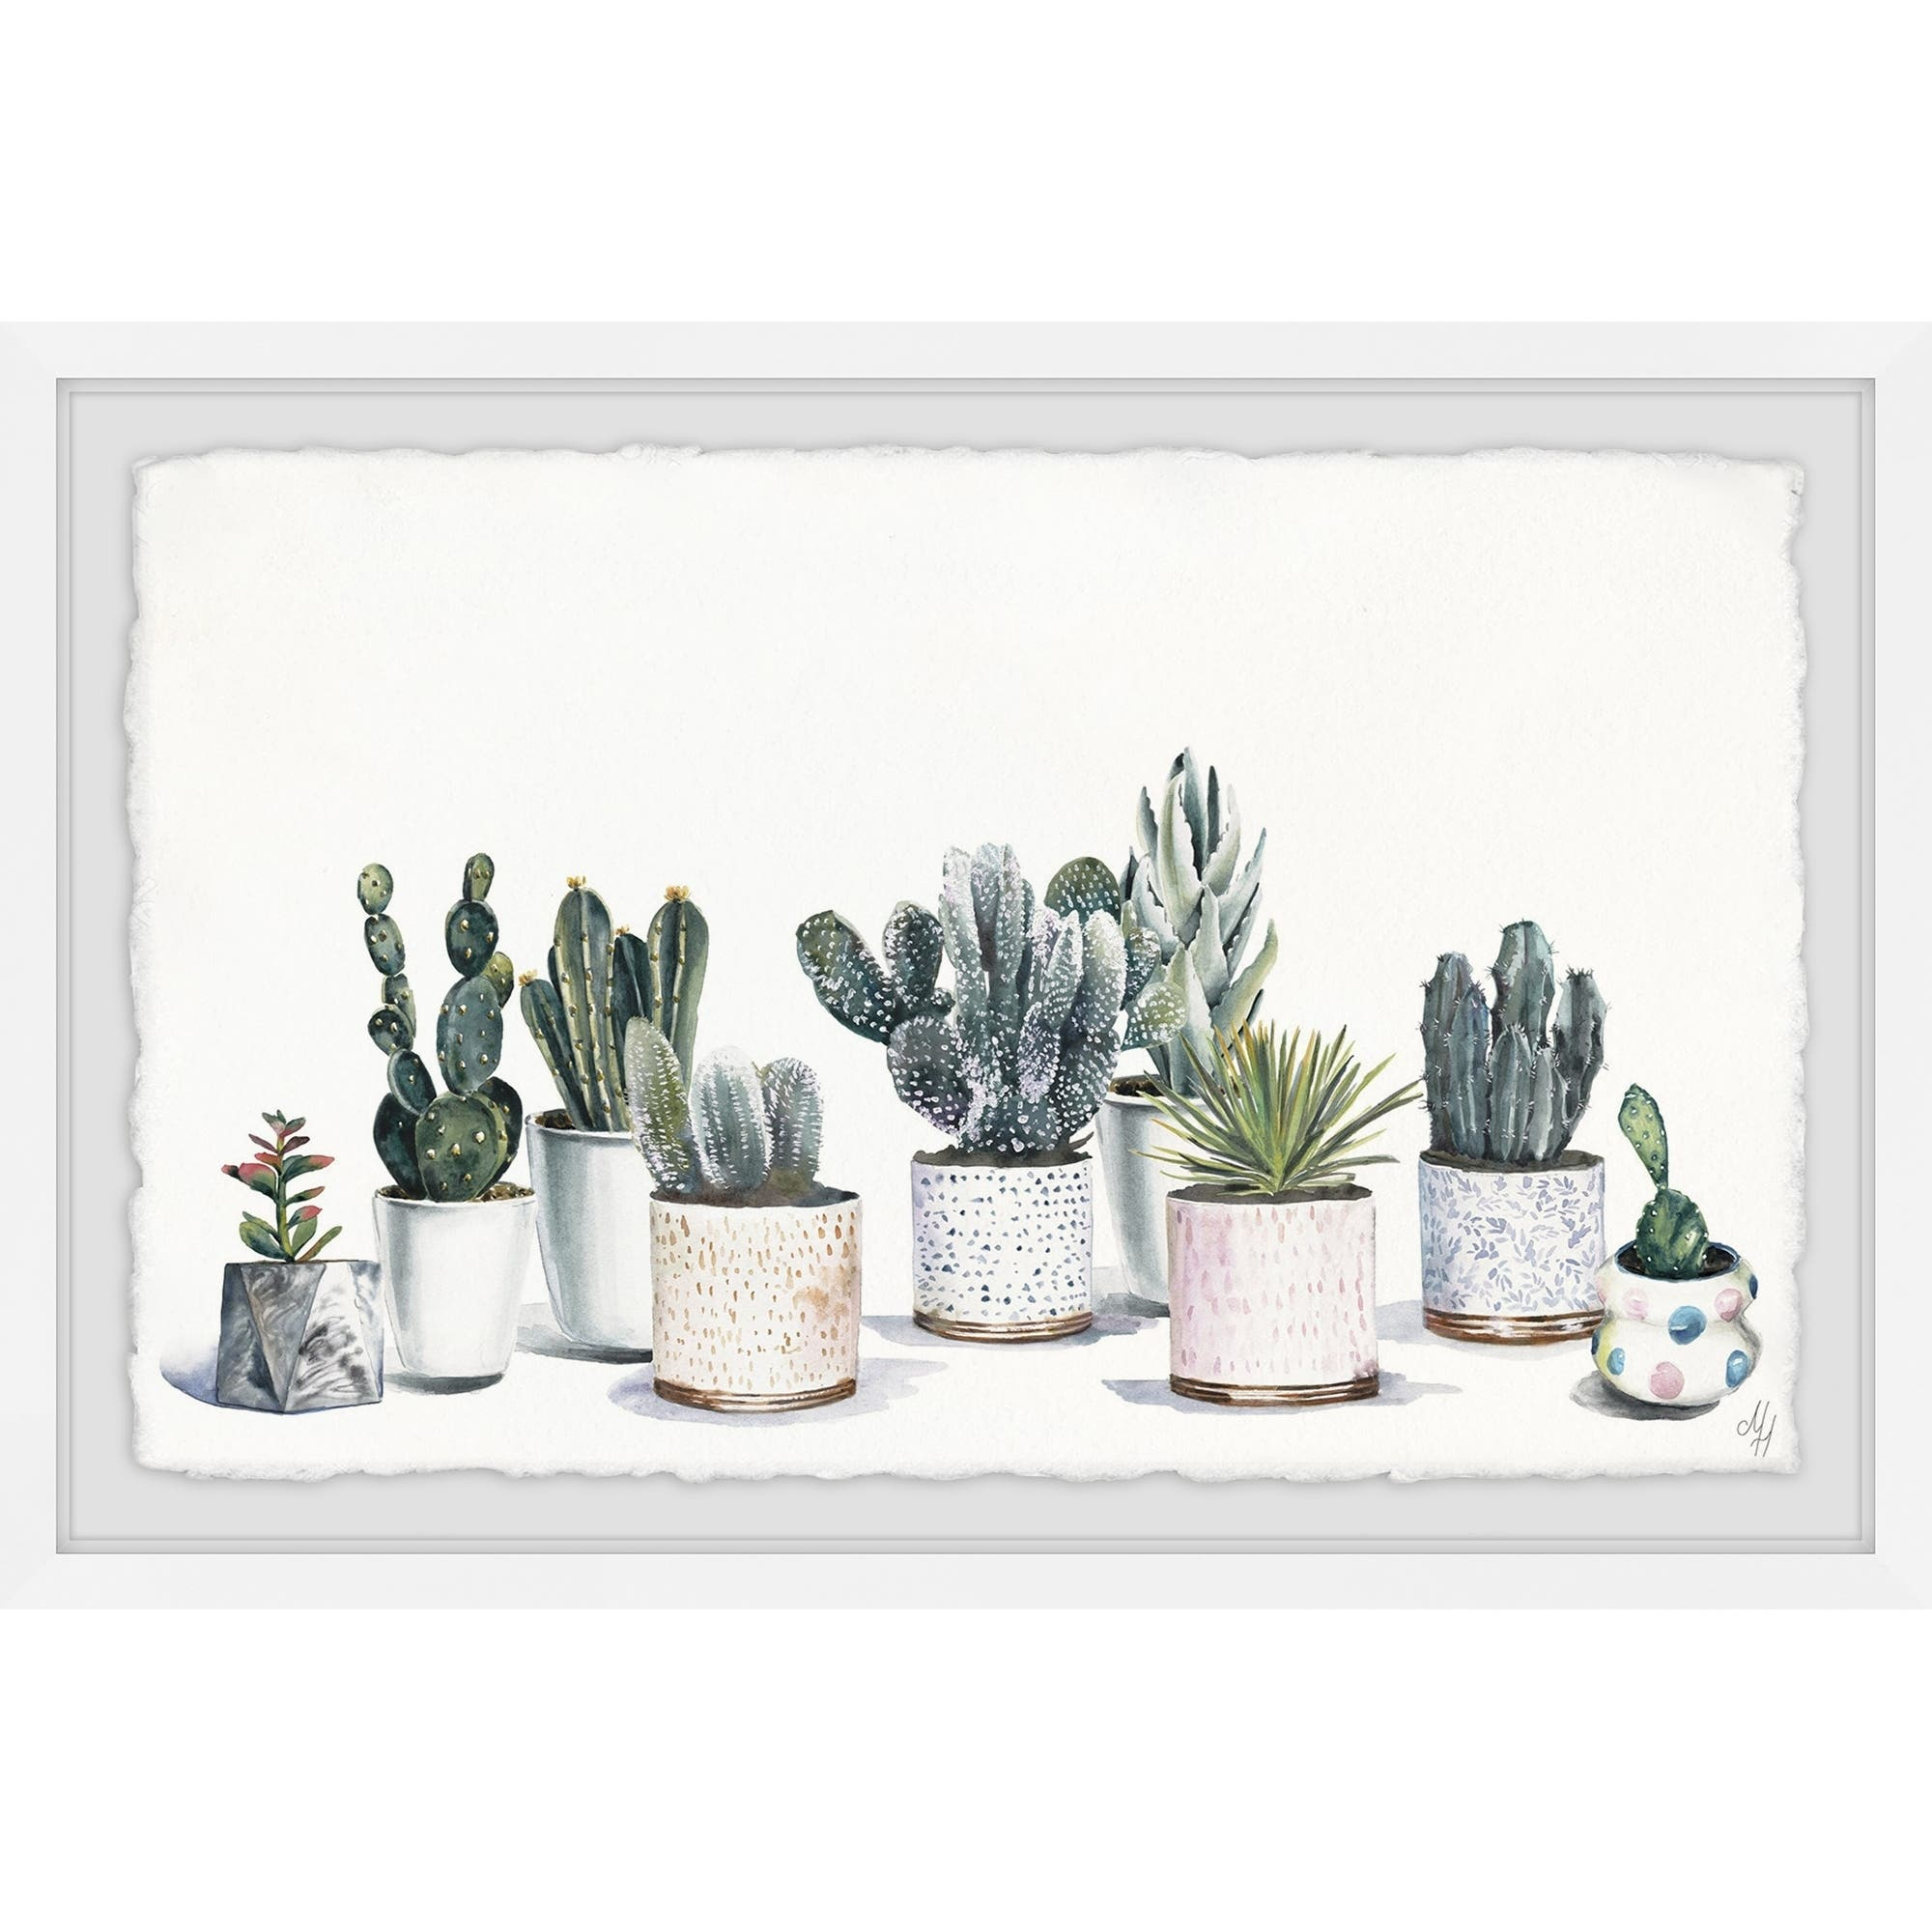 Home Goods Artwork: Buy Framed Prints Online At Overstock